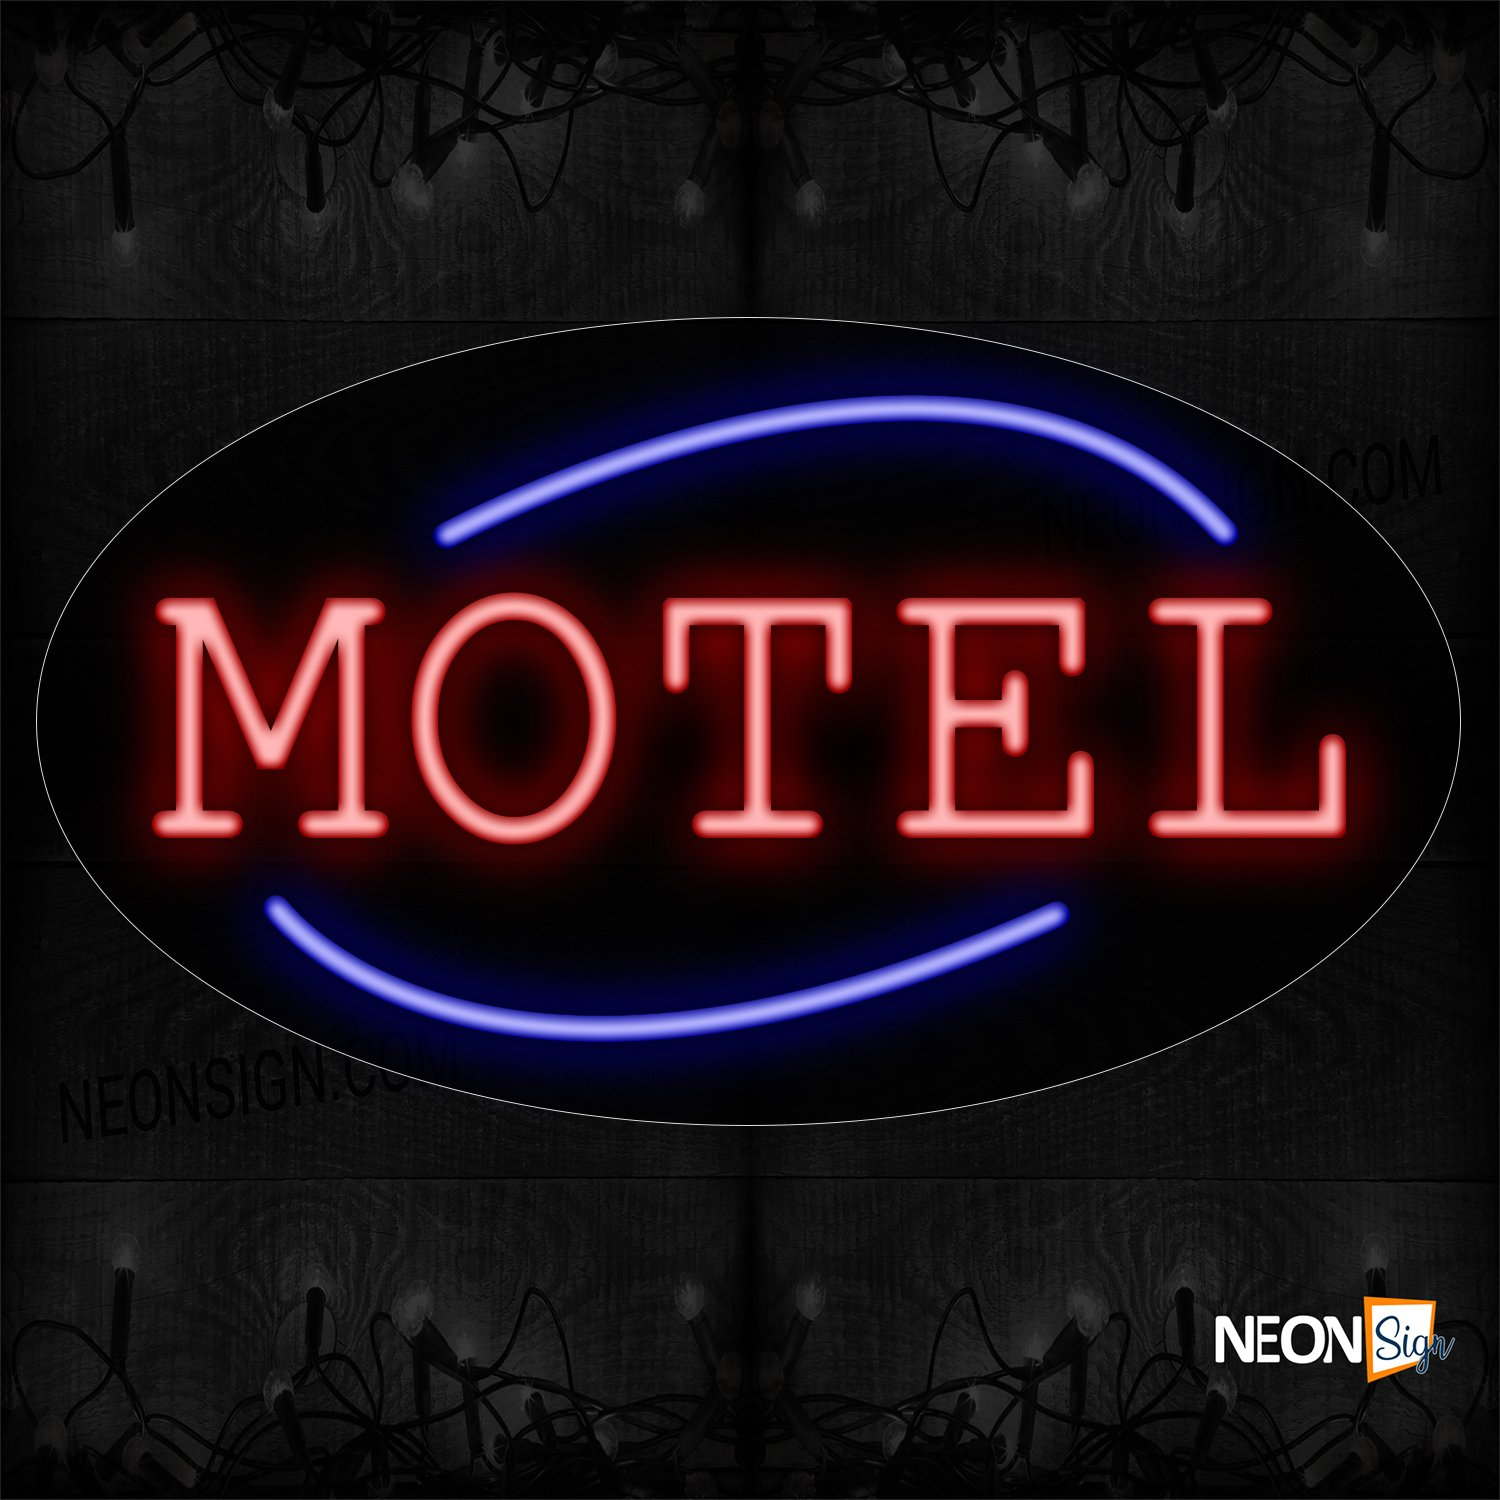 Image of 14251 Motel In Red With Blue Arc Border Neon Sign_17x30 Contoured Black Backing